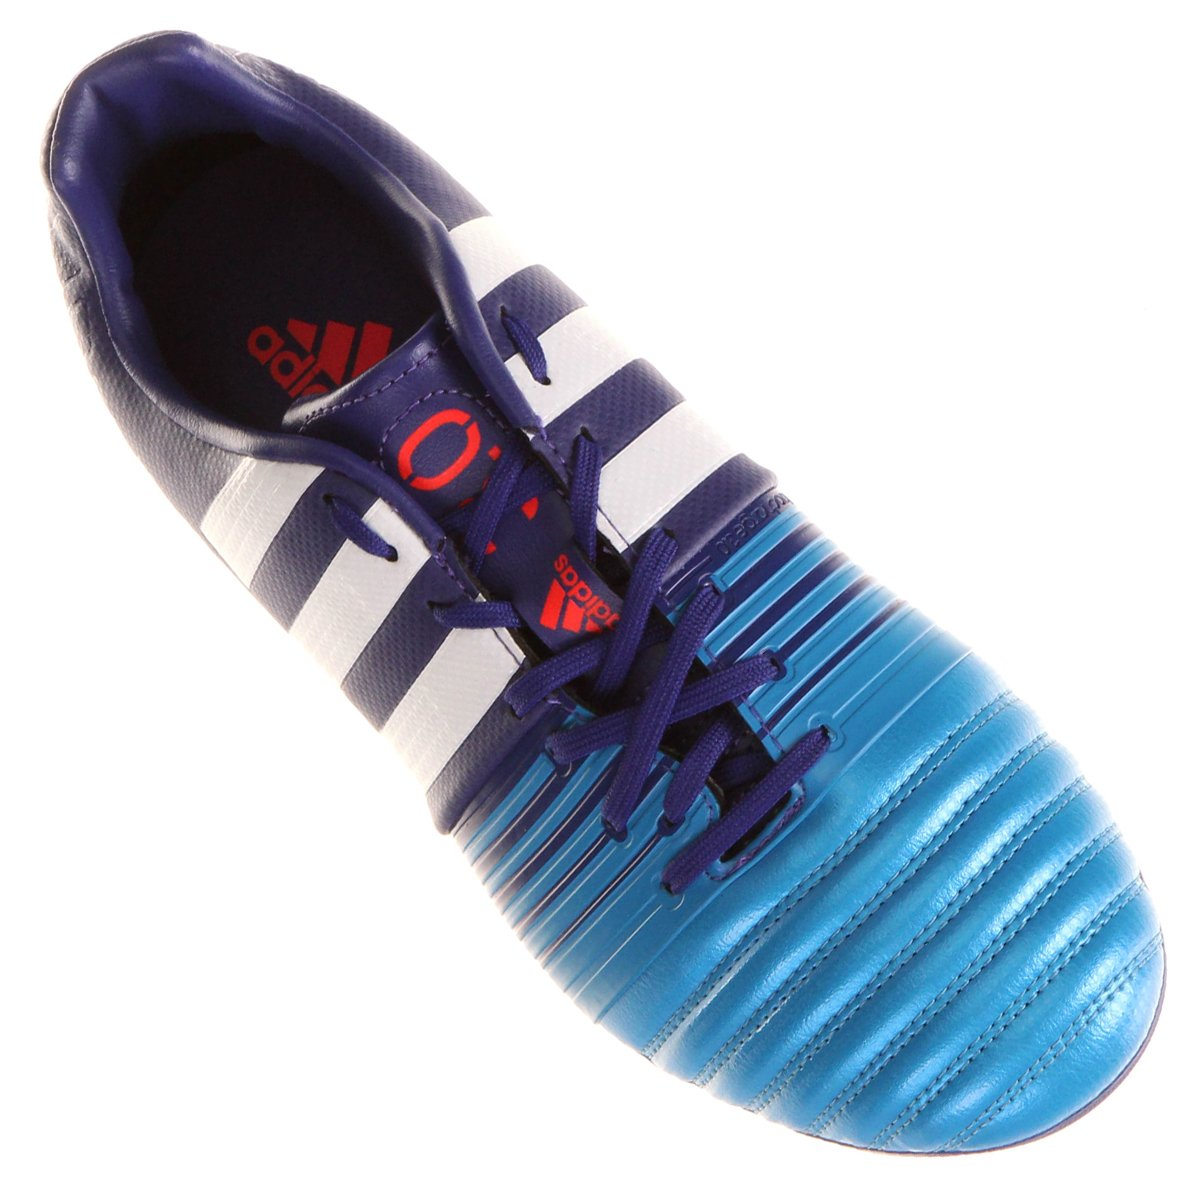 the best attitude 71b33 38420 ... where to buy italy chuteira adidas nitrocharge 3.0 fg campo 2900e f6ed5  d2180 6532a